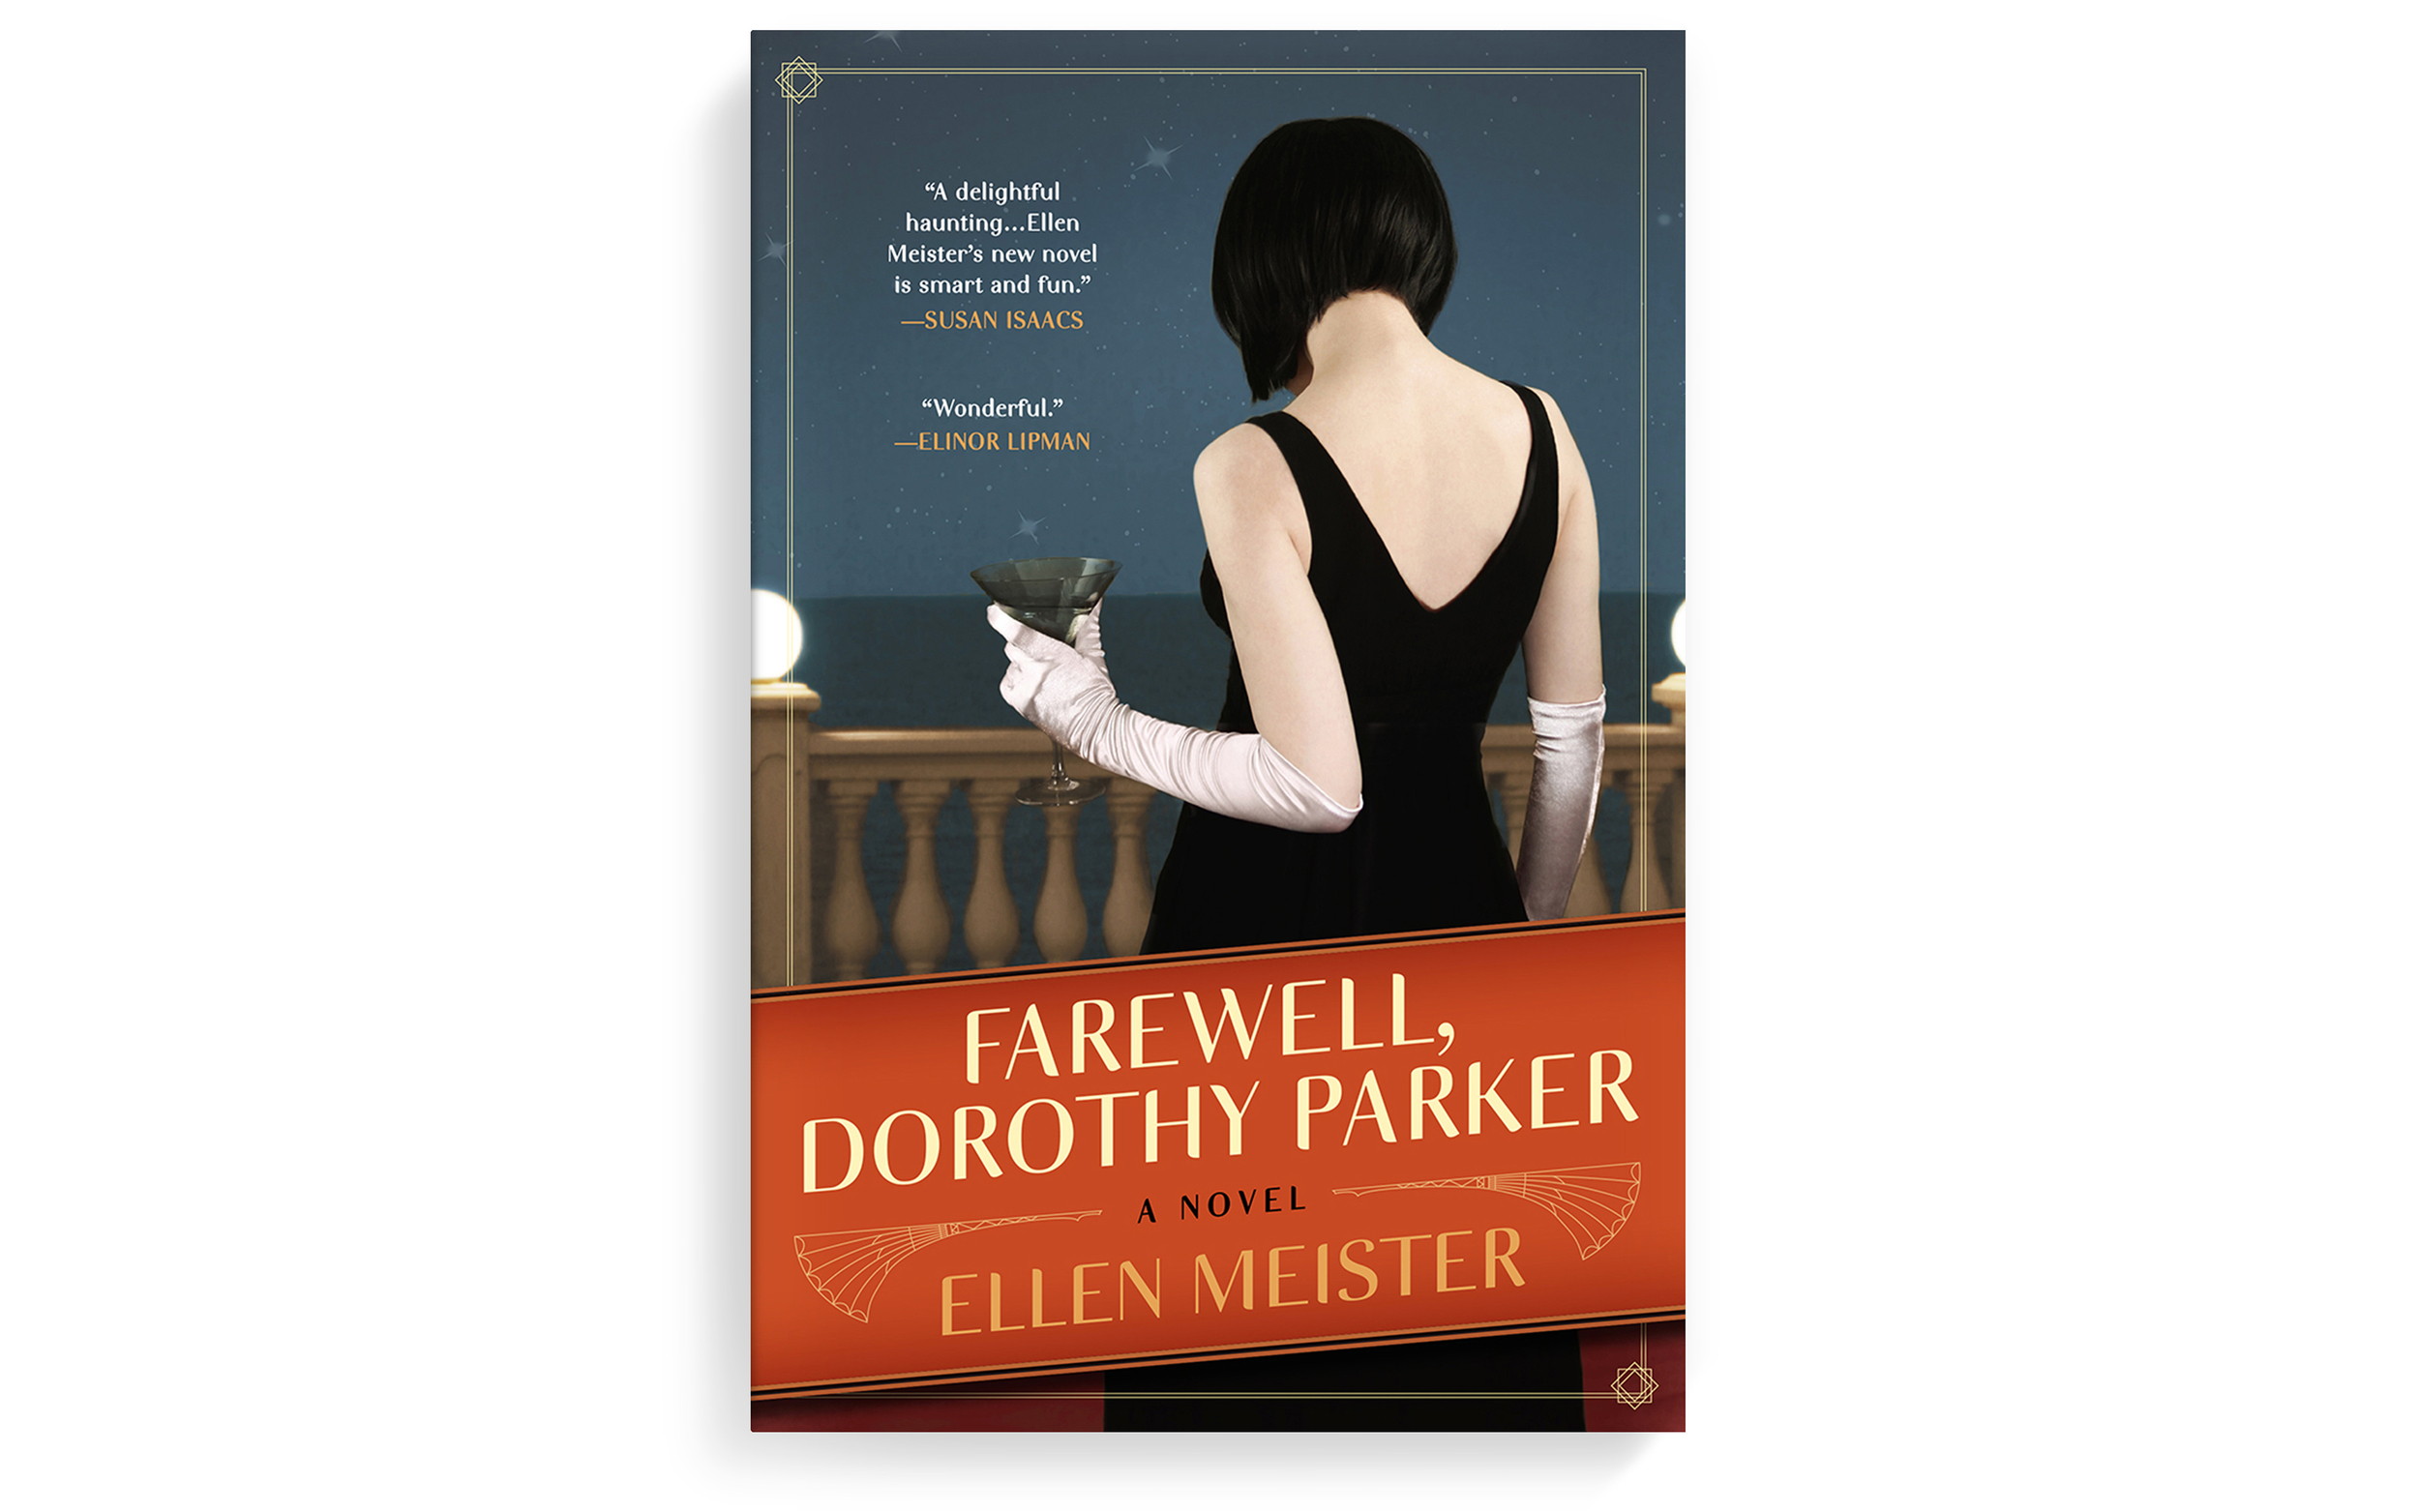 This quirky novel imagines a haunting by Dorothy Parker—one I would very much enjoy.I've tried saying her name three times into the mirror with the lights off, but nothing yet...  Art direction + cover design. Berkley.2013.